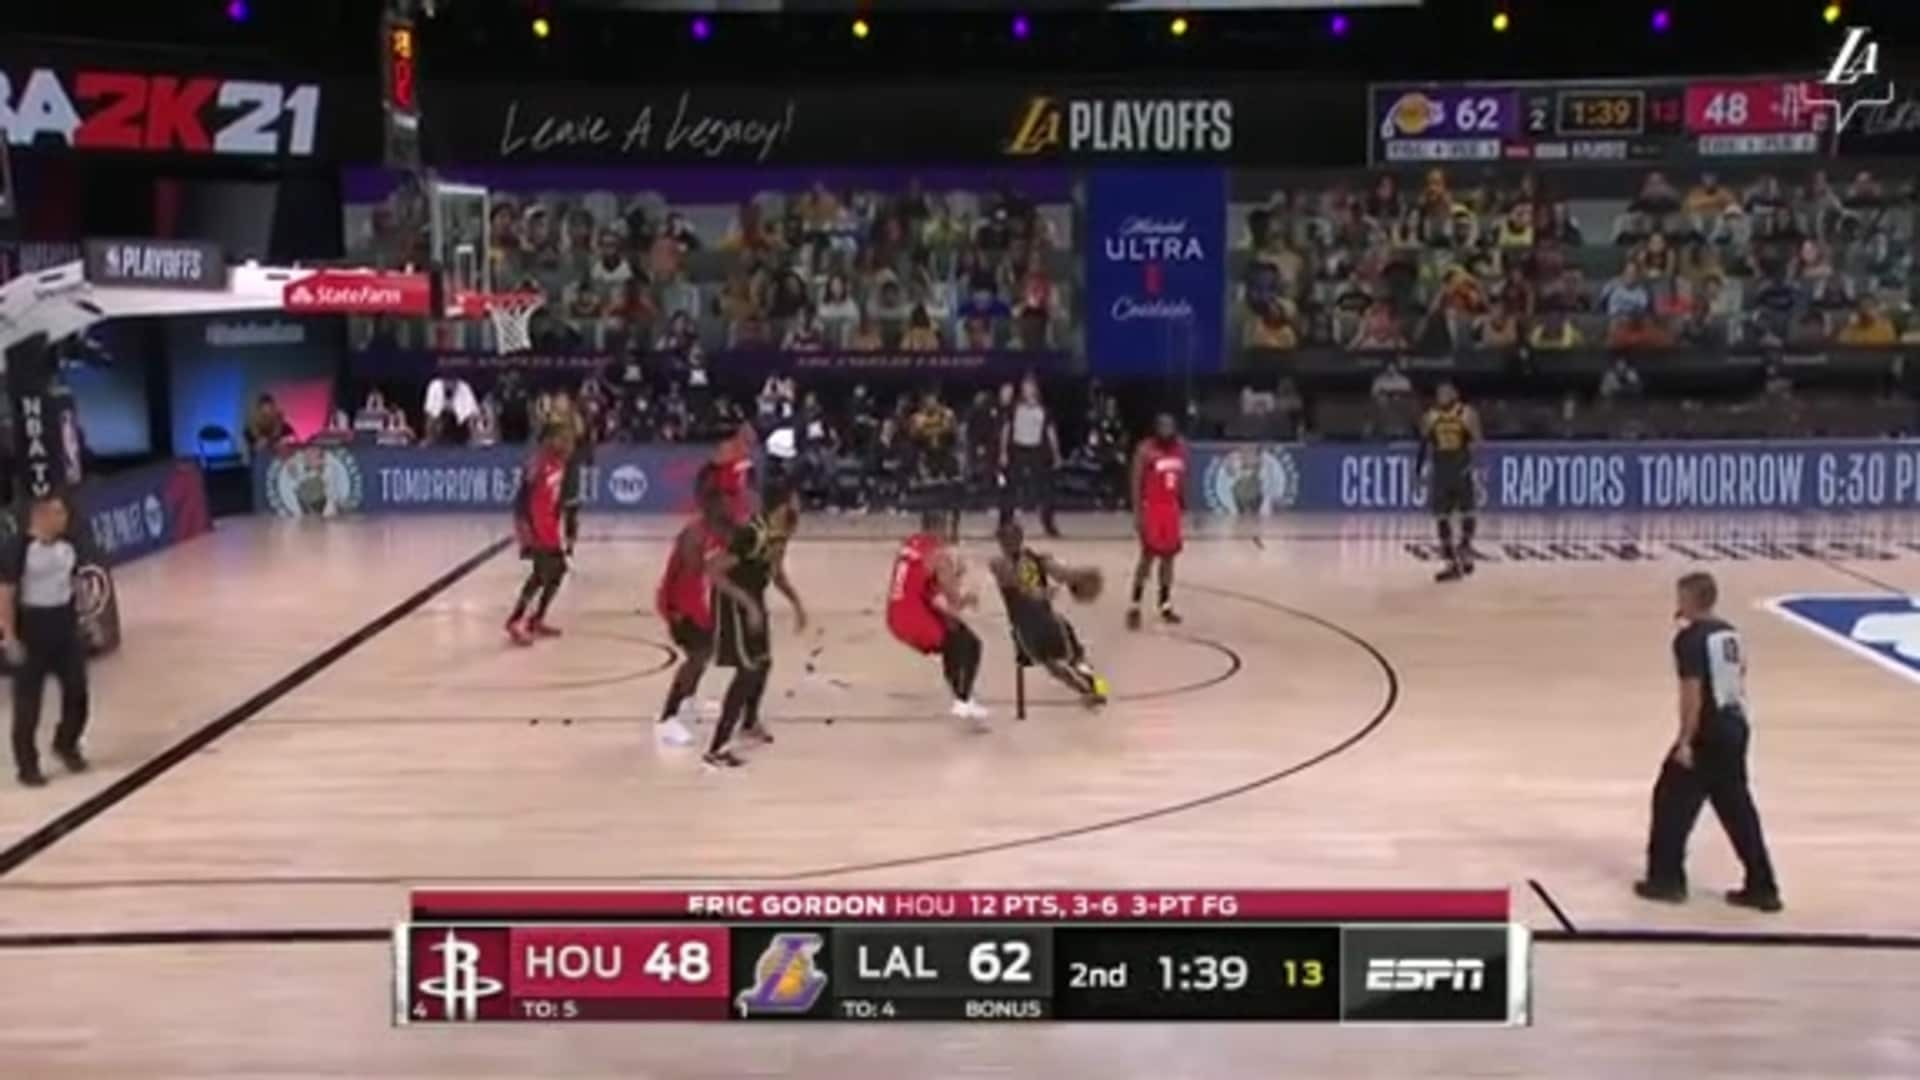 HIGHLIGHTS | Lakers vs Rockets (Game 2) | Los Angeles Lakers